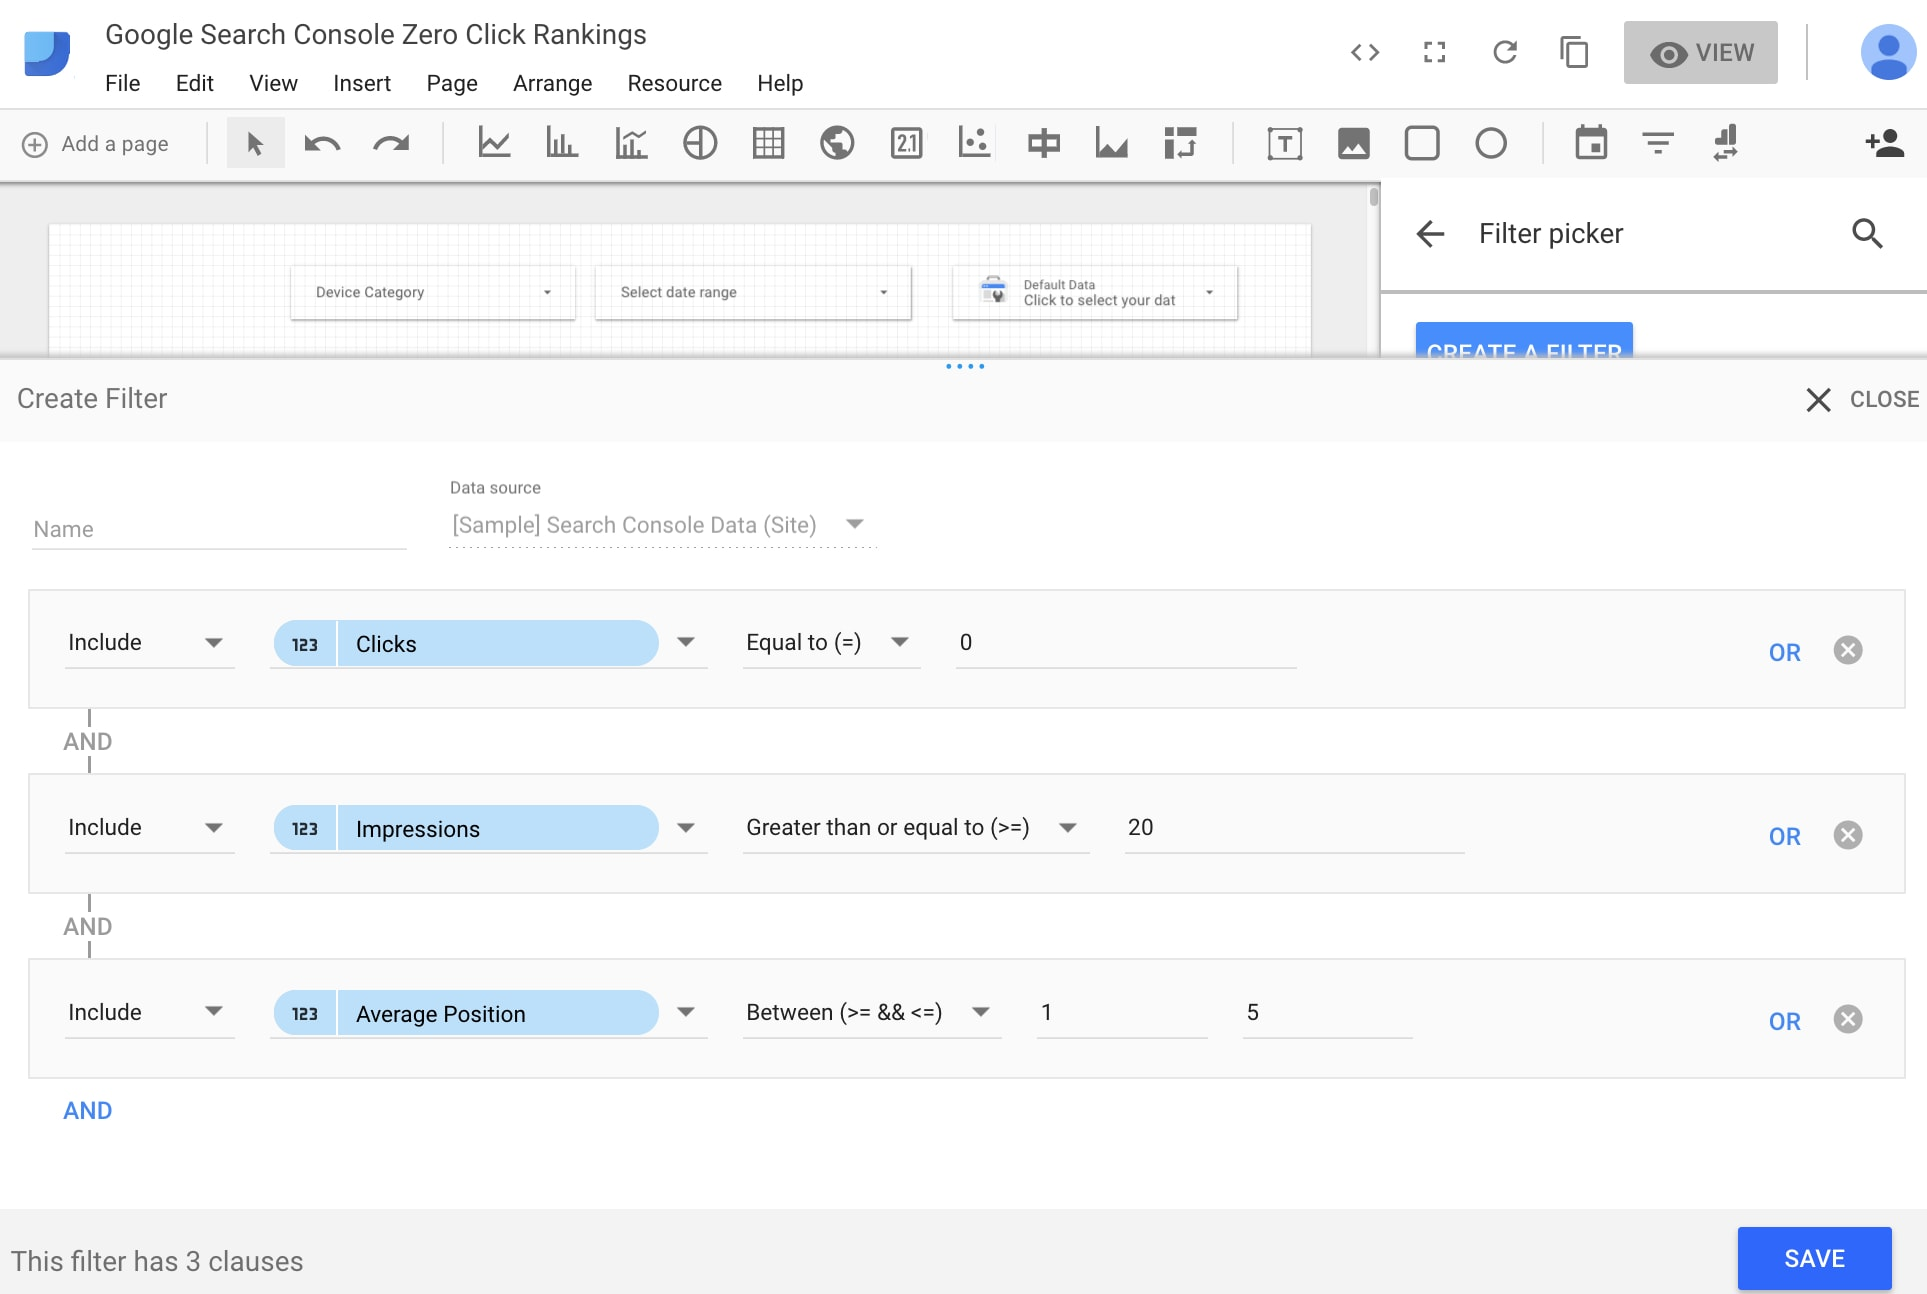 In Google Data Studio, filter keywords with zero clicks that rank in positions 1 through 5.